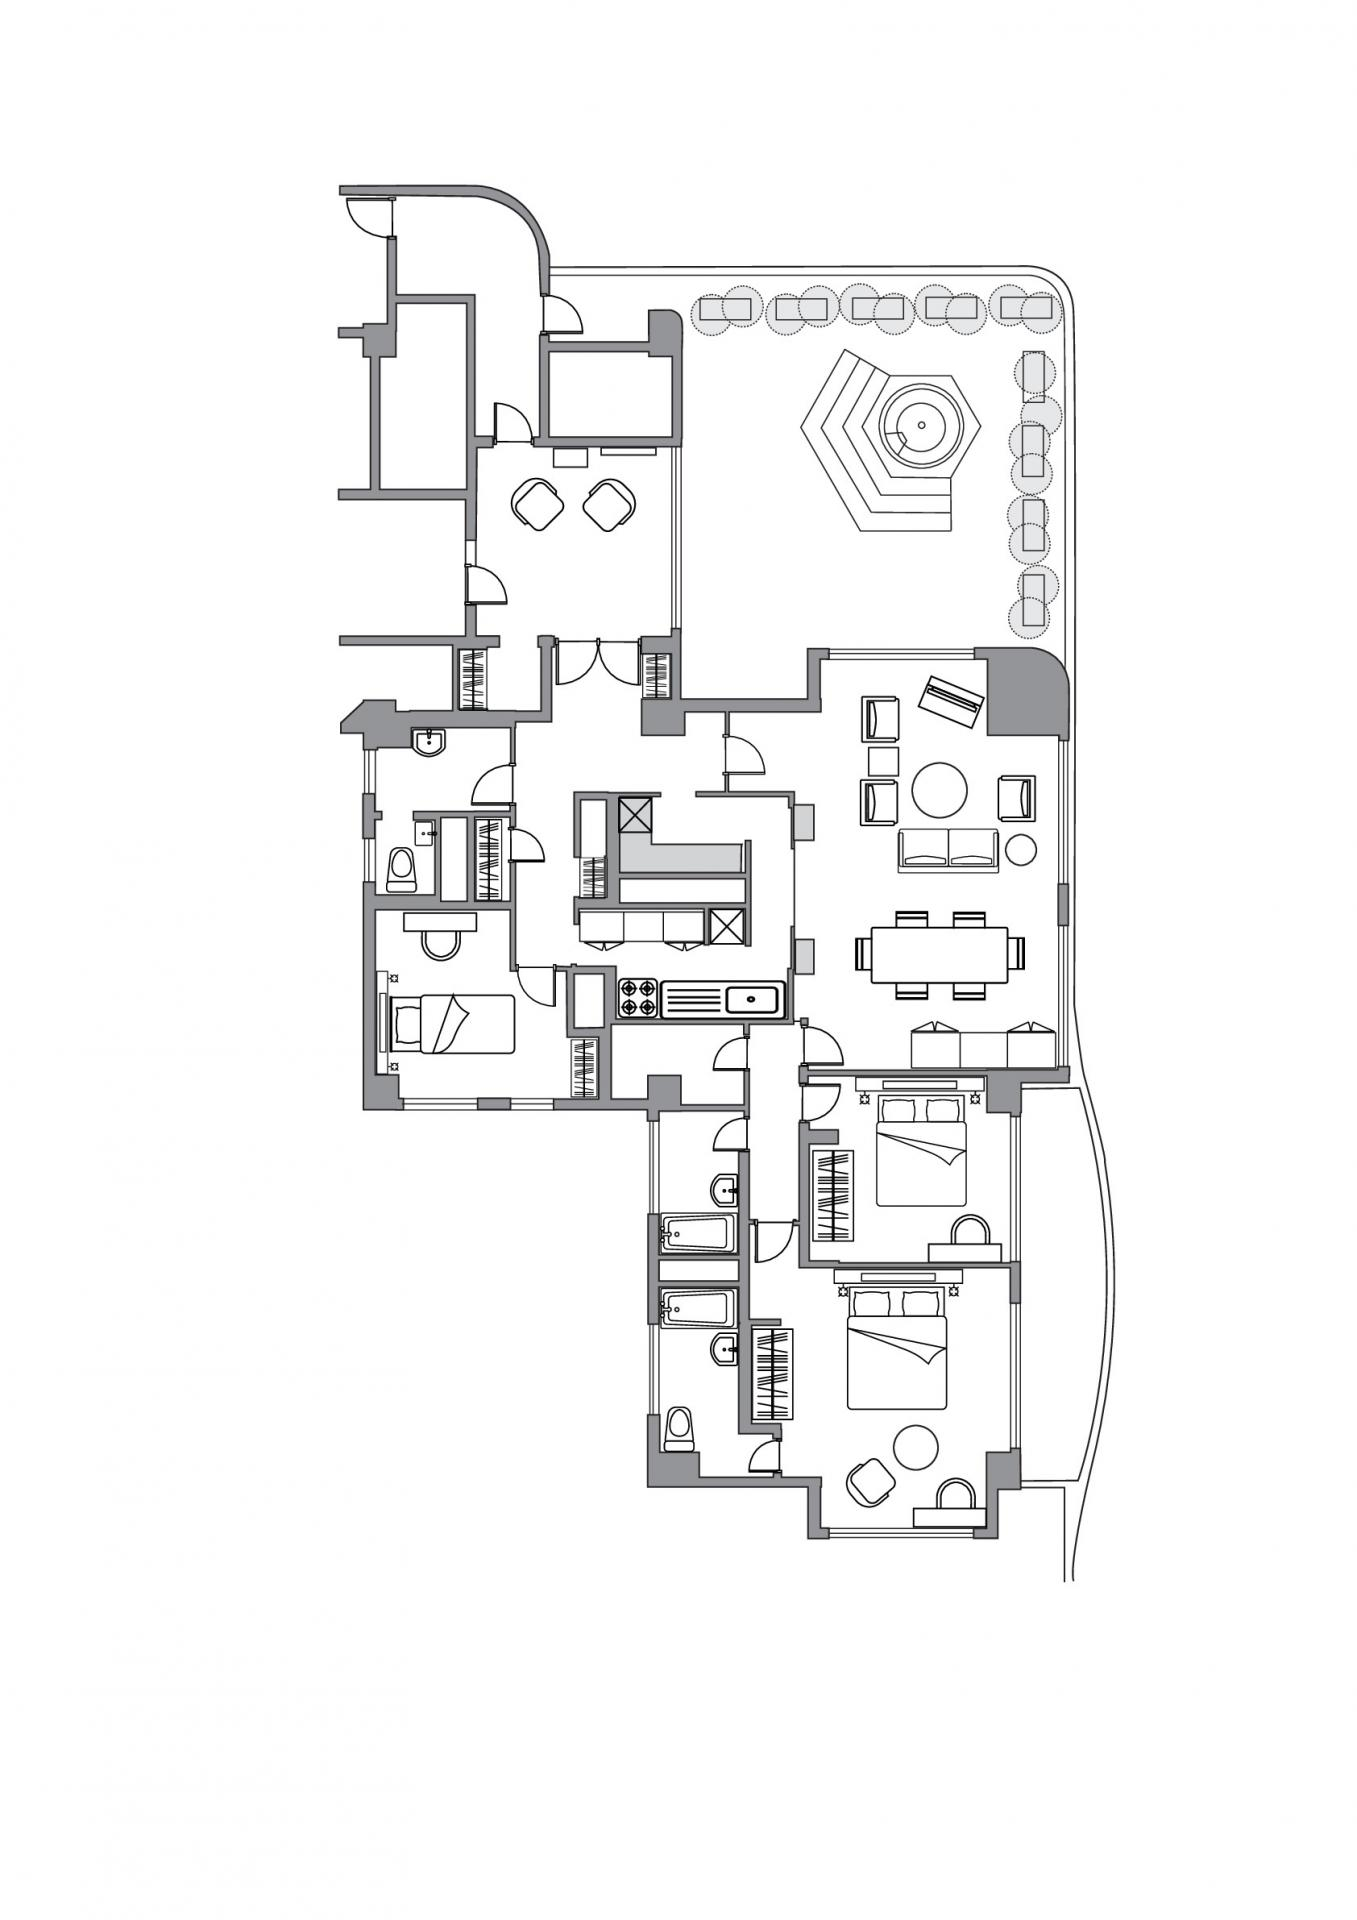 2 bedroom premier apartment floor plan at Somerset Shinagawa Apartments